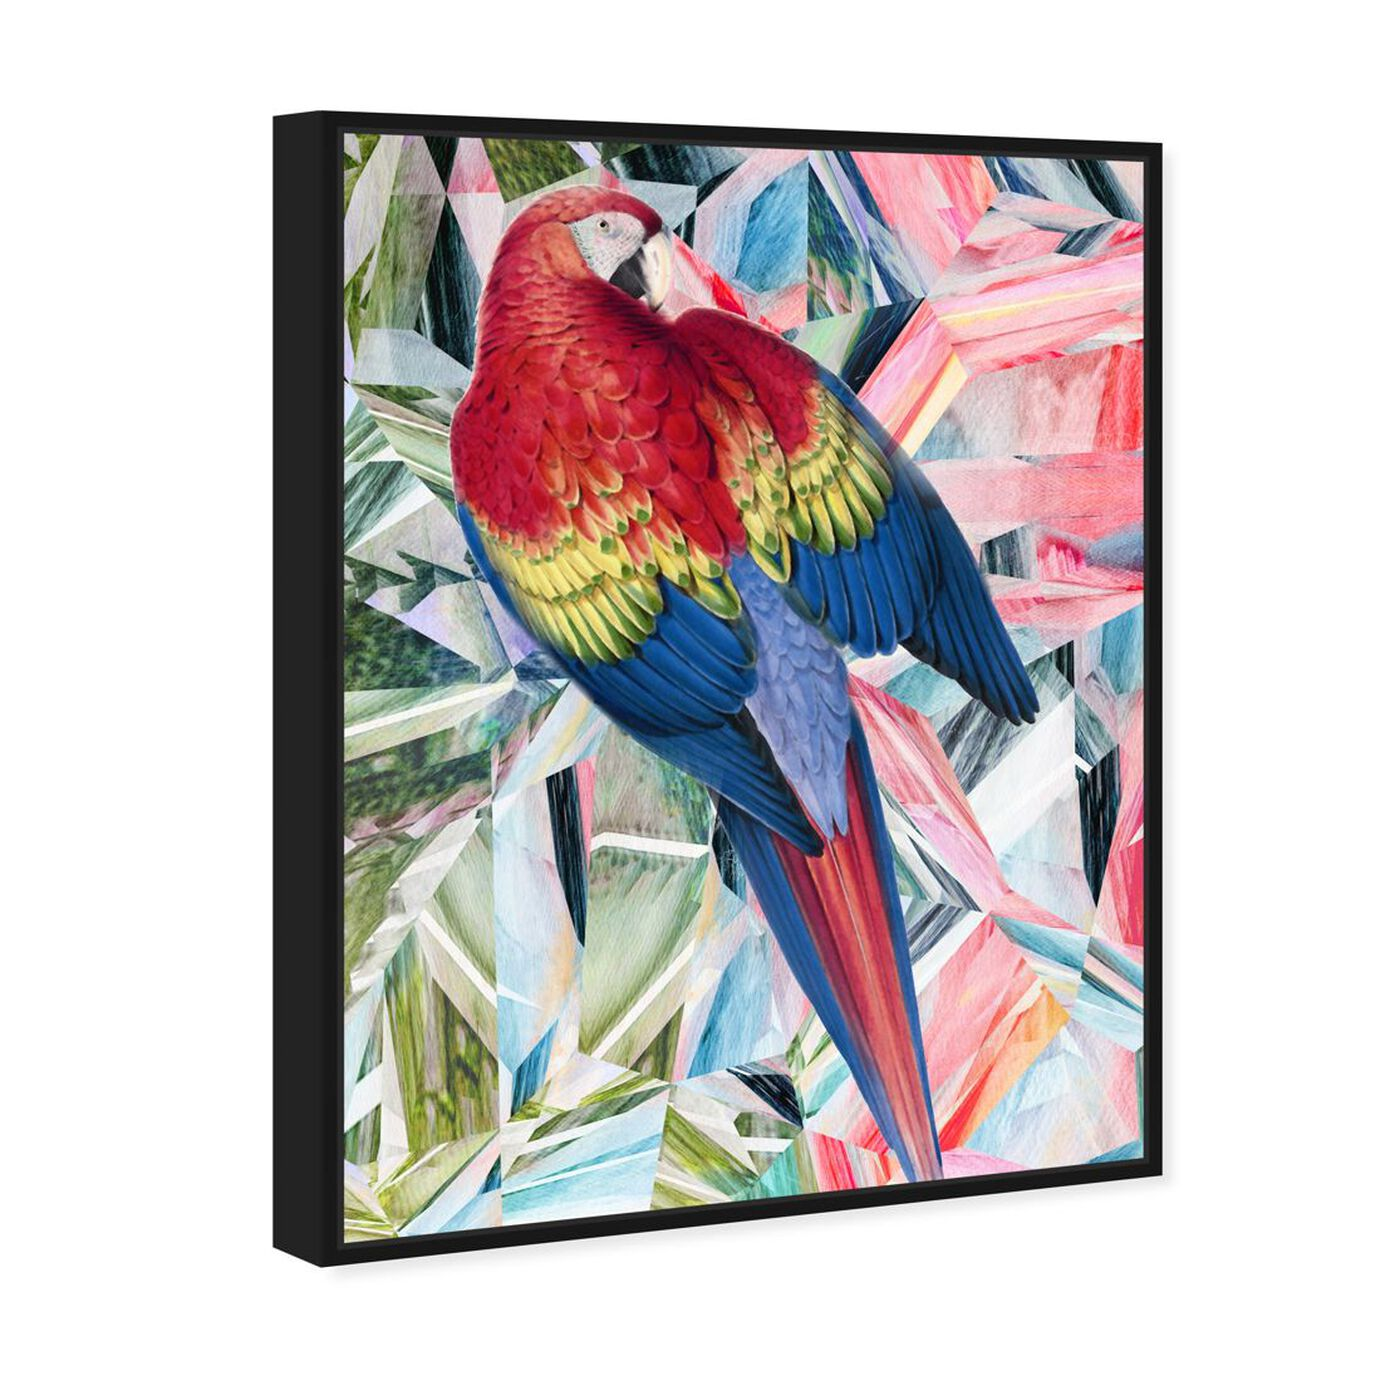 Angled view of Modern Parrot featuring animals and birds art.